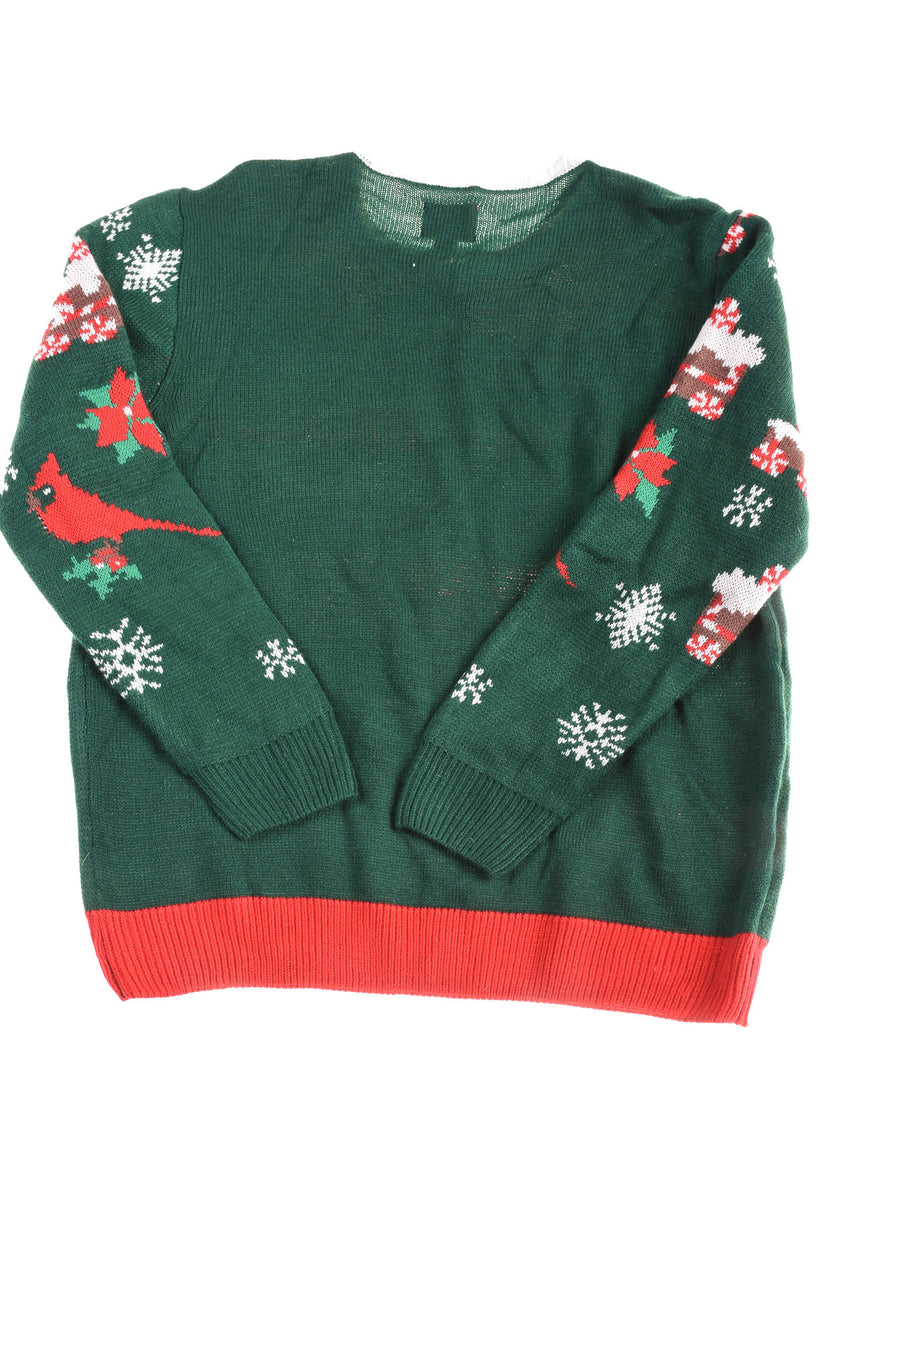 USED Party Sweater Men's Sweater X-Large Green, Red, & White